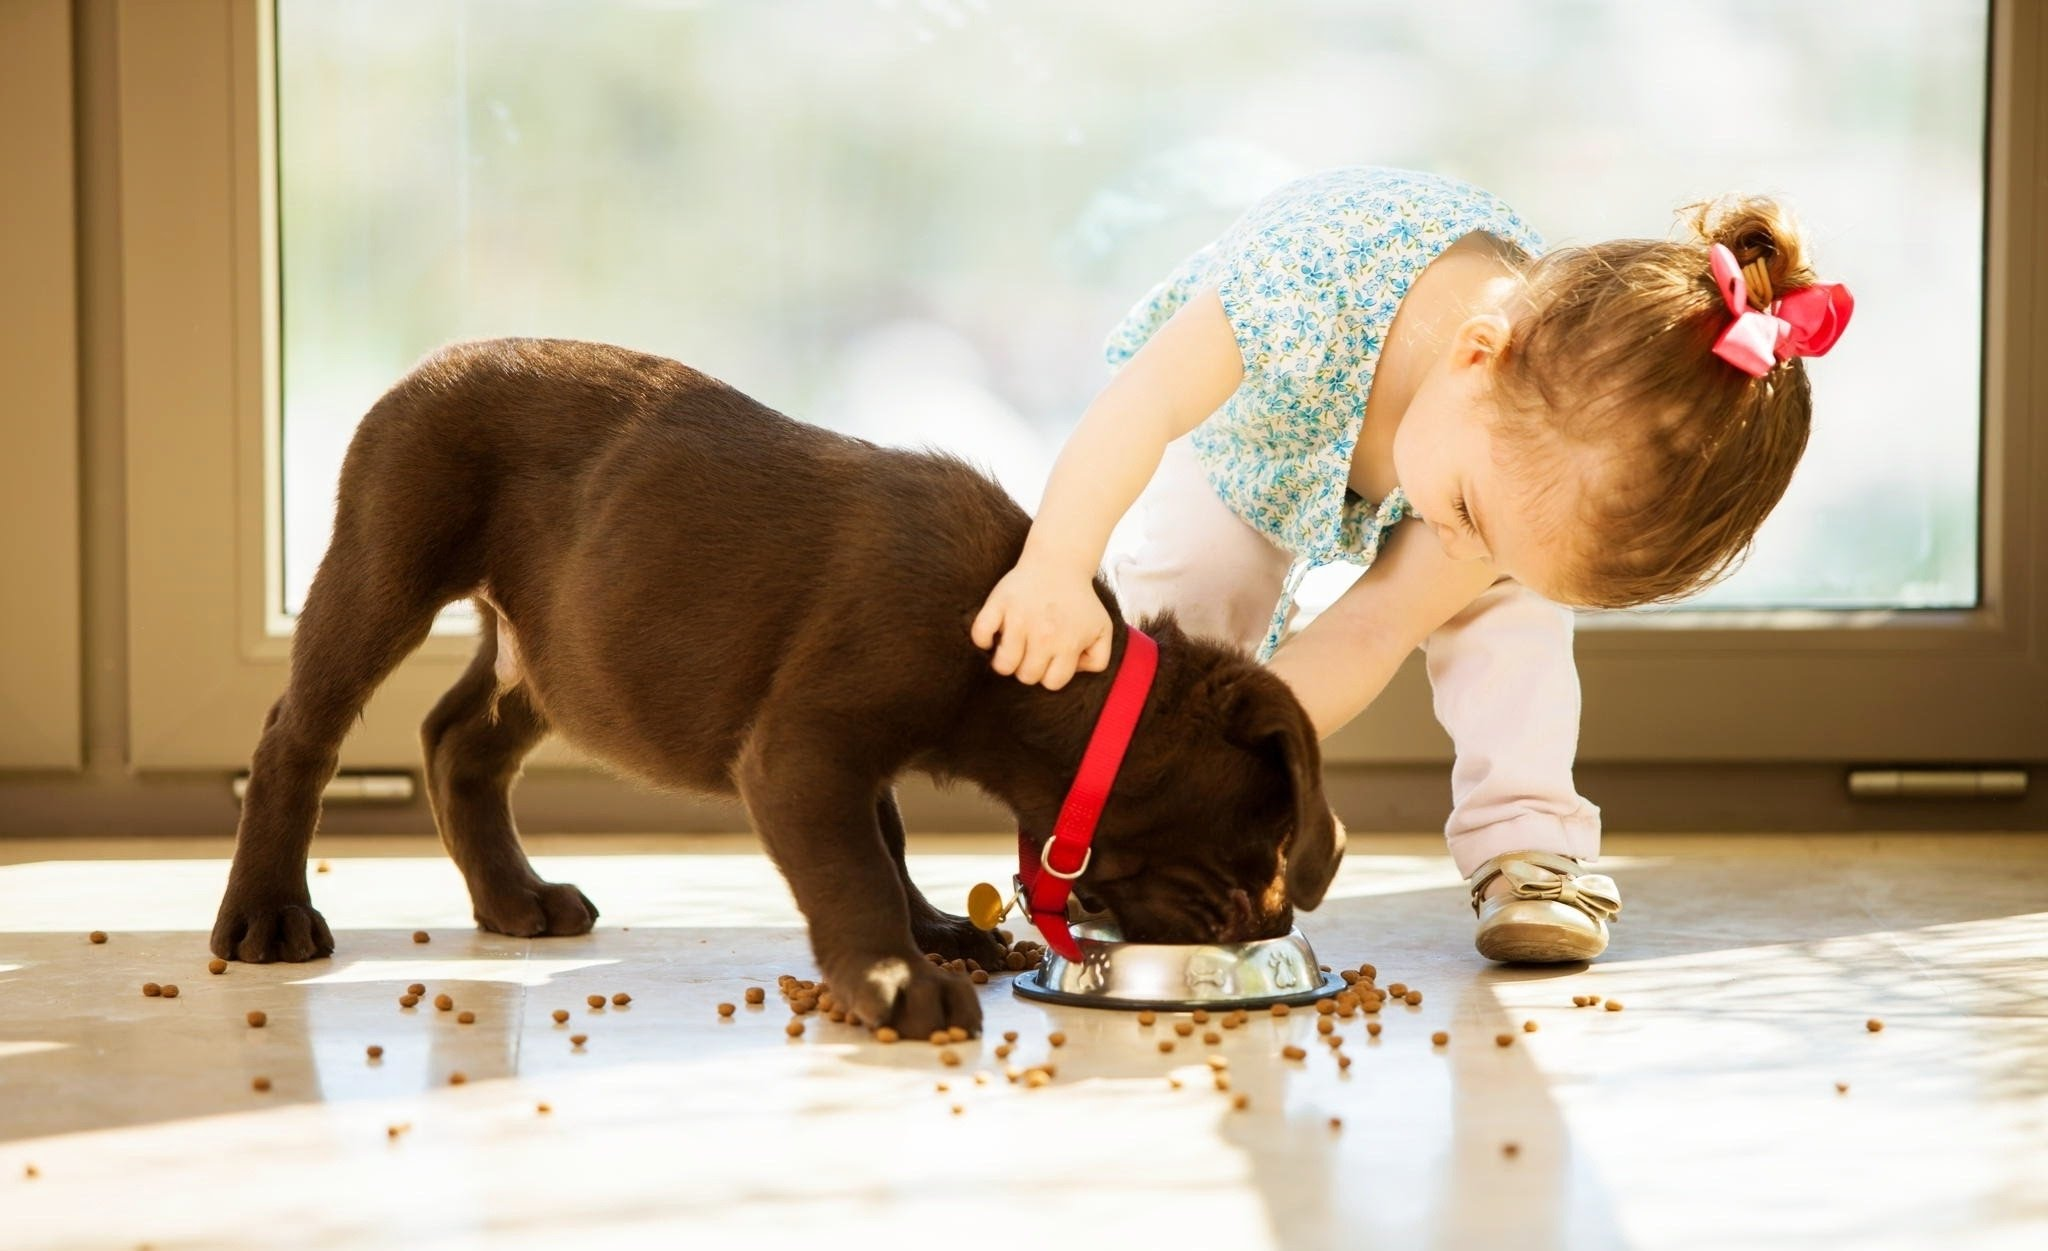 Super Cute Little Baby Wallpapers Love At First Lick The Cuddliest Baby Amp Dog Bff Photos